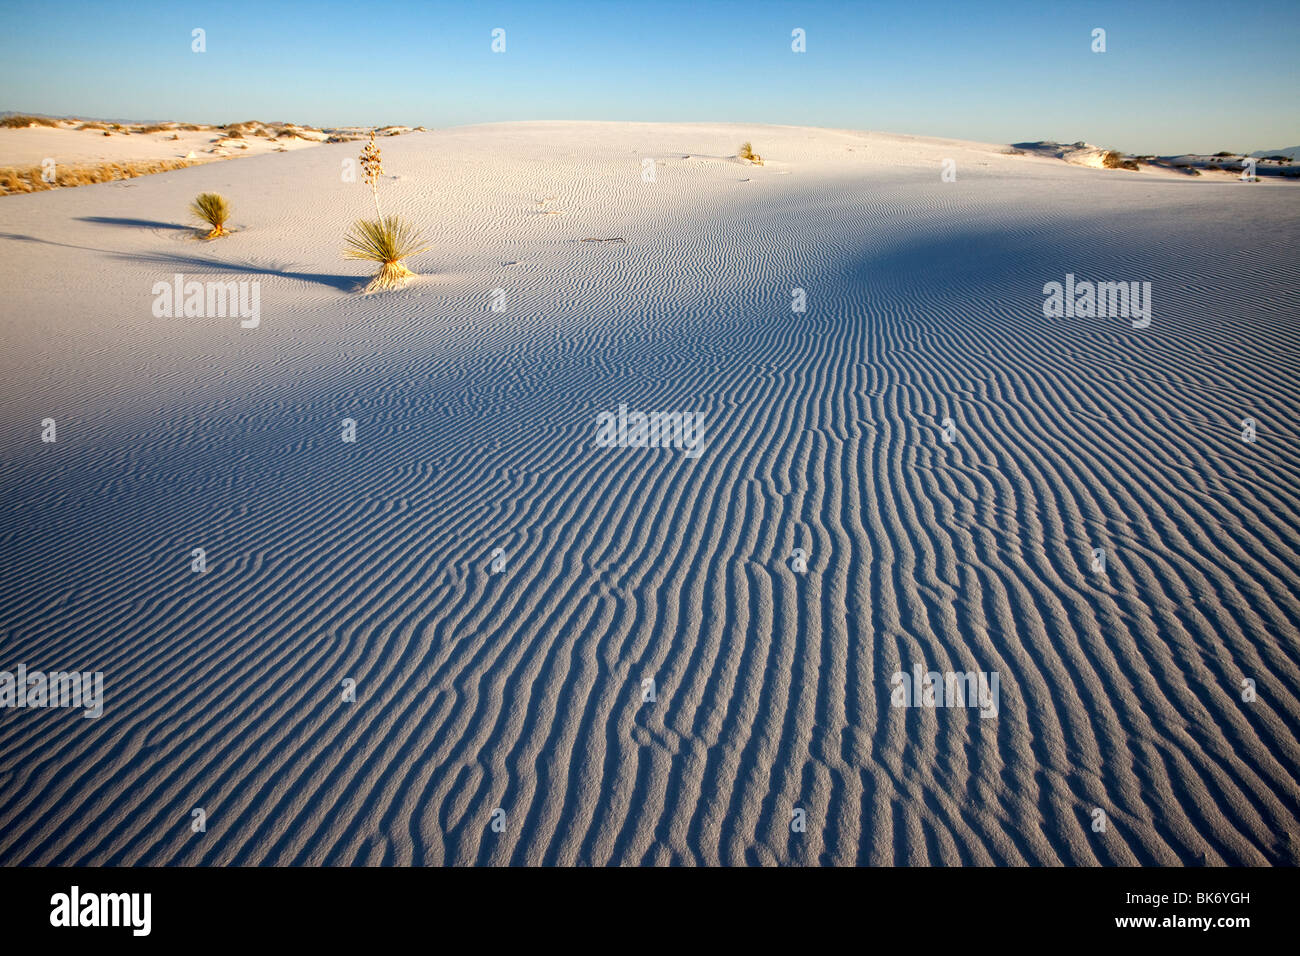 White Sands National Monument, Nuovo Messico Immagini Stock